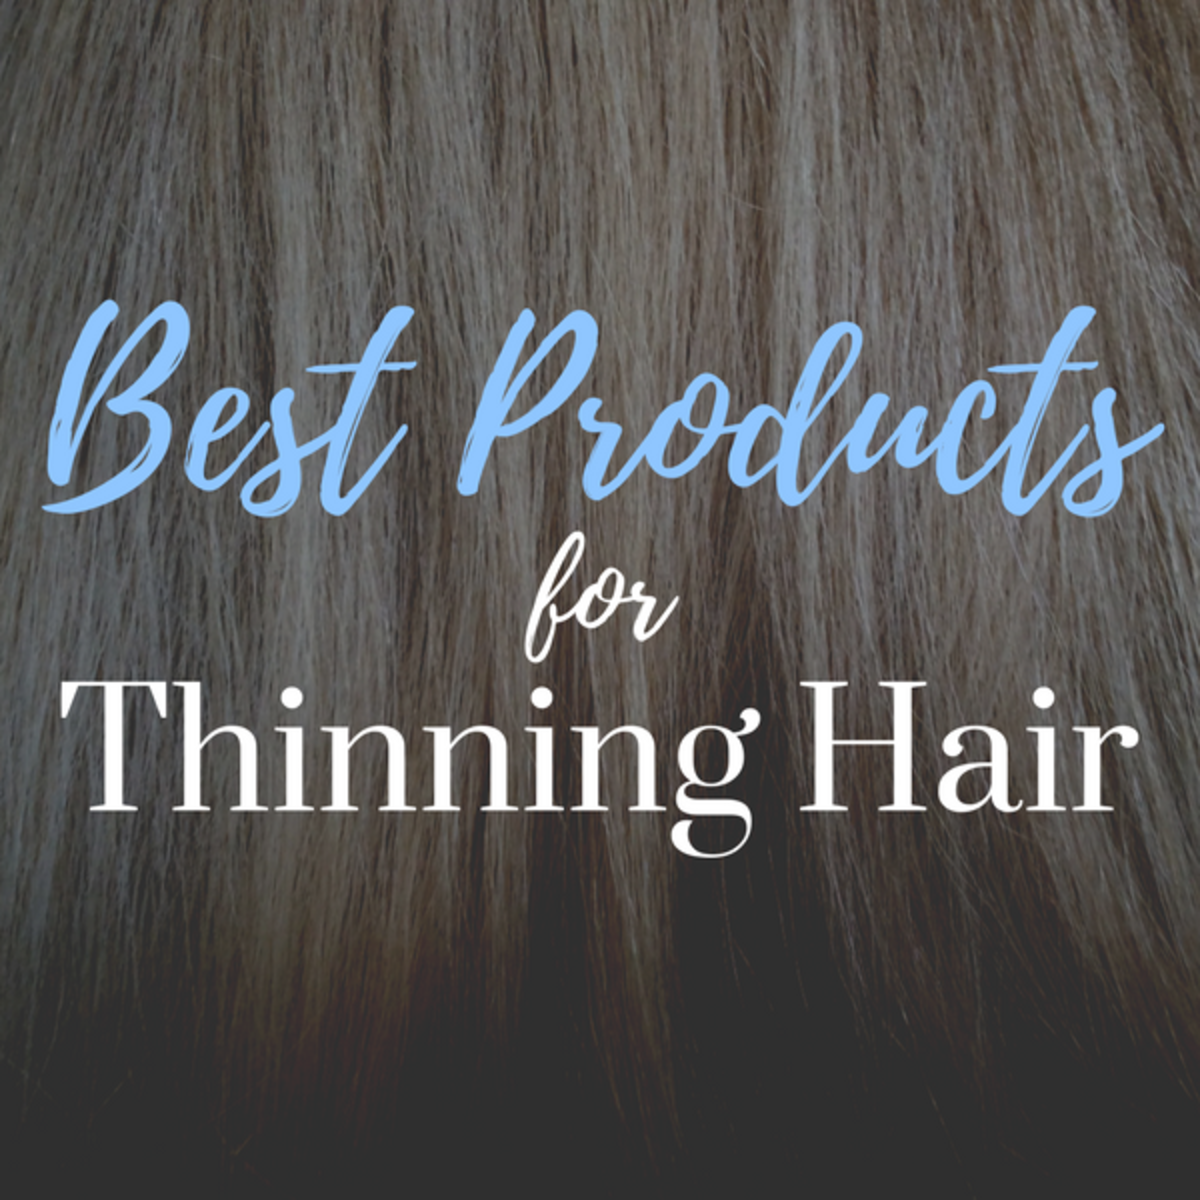 Find out which products will make your hair look its best.